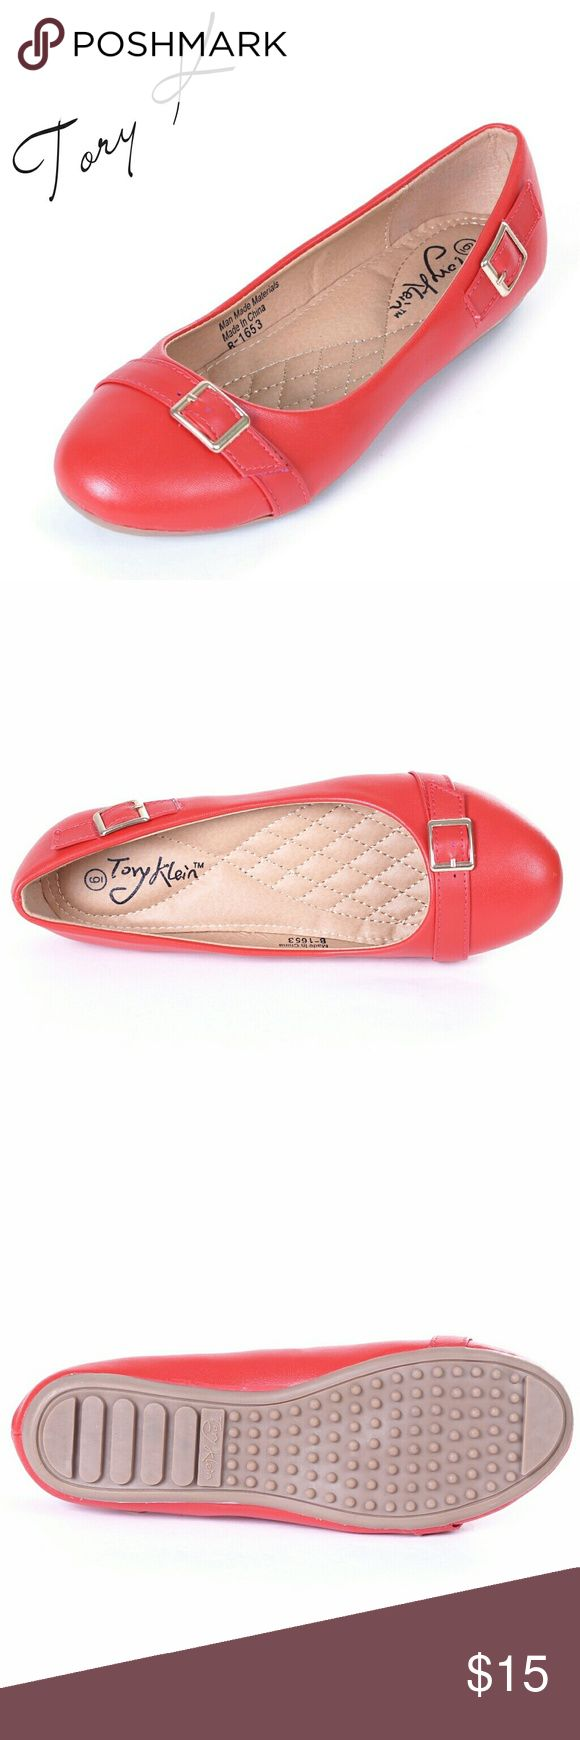 Women Ballerina Flats with Buckle, b-1653, Red Brand new Tory Klein woman ballerina flats in beautiful glossy red with a belt like buckle in the front, and anotherone on the outer side. Soft cushioned sole, very comfortable. Bubbled bottom sole for extra traction. A true staple in ladies shoes fashion! Measurements: larger sizes run small. Size  10 measures 10.5 inches. Tory K  Shoes Flats & Loafers